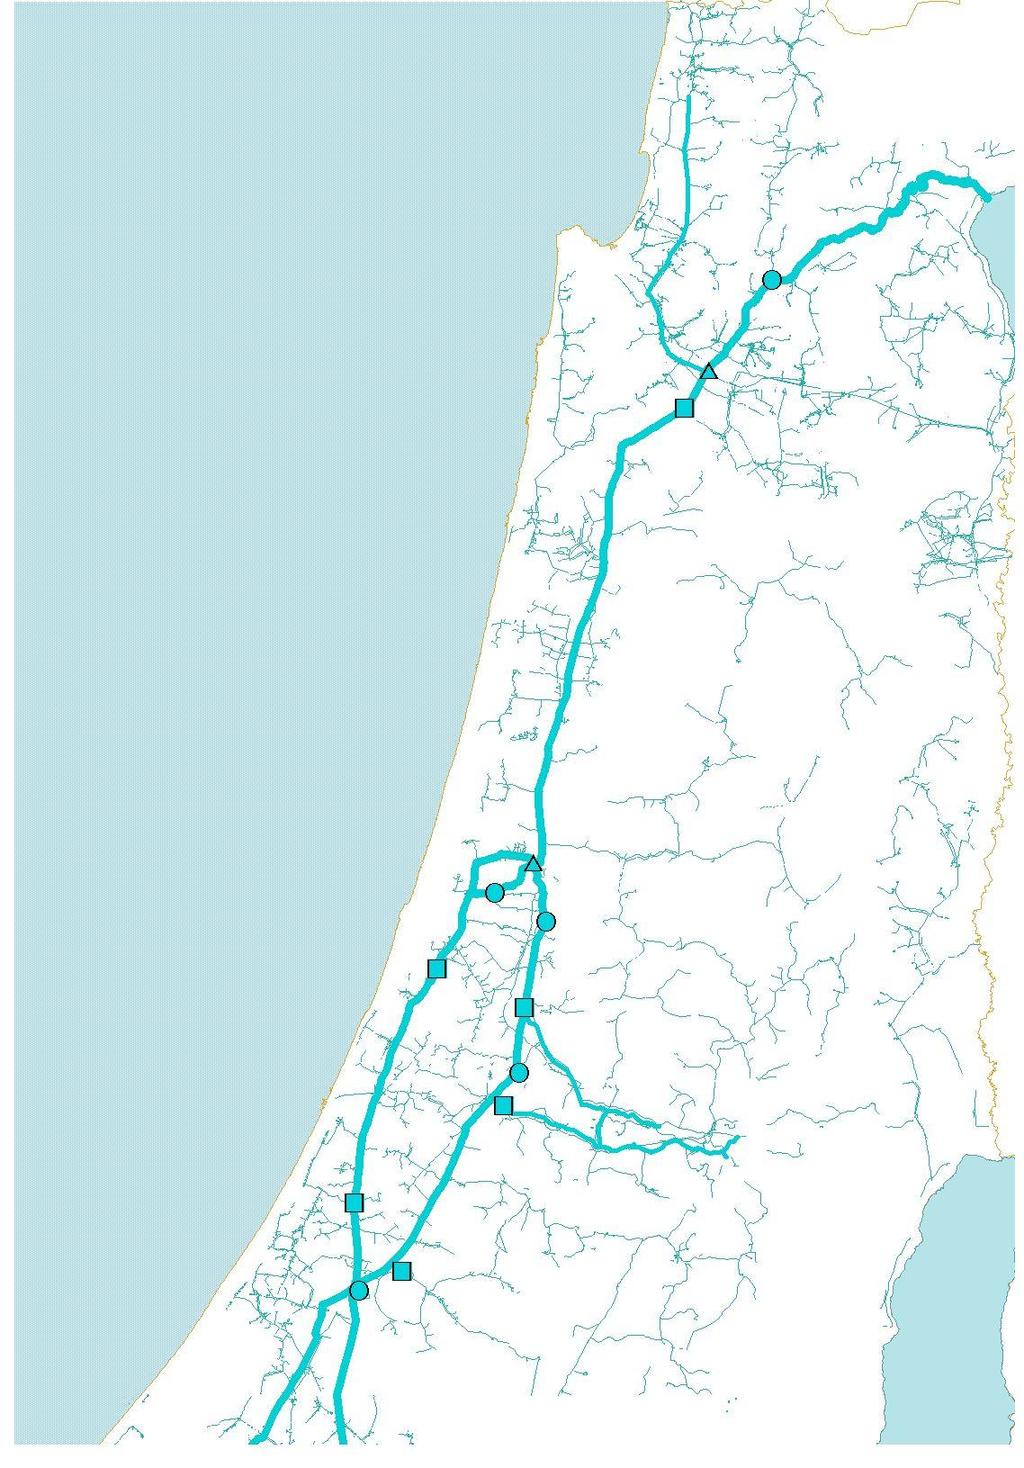 Mediterranean seawater desalination capacity 2016 570 Mm 3 /yr Haifa Operating since